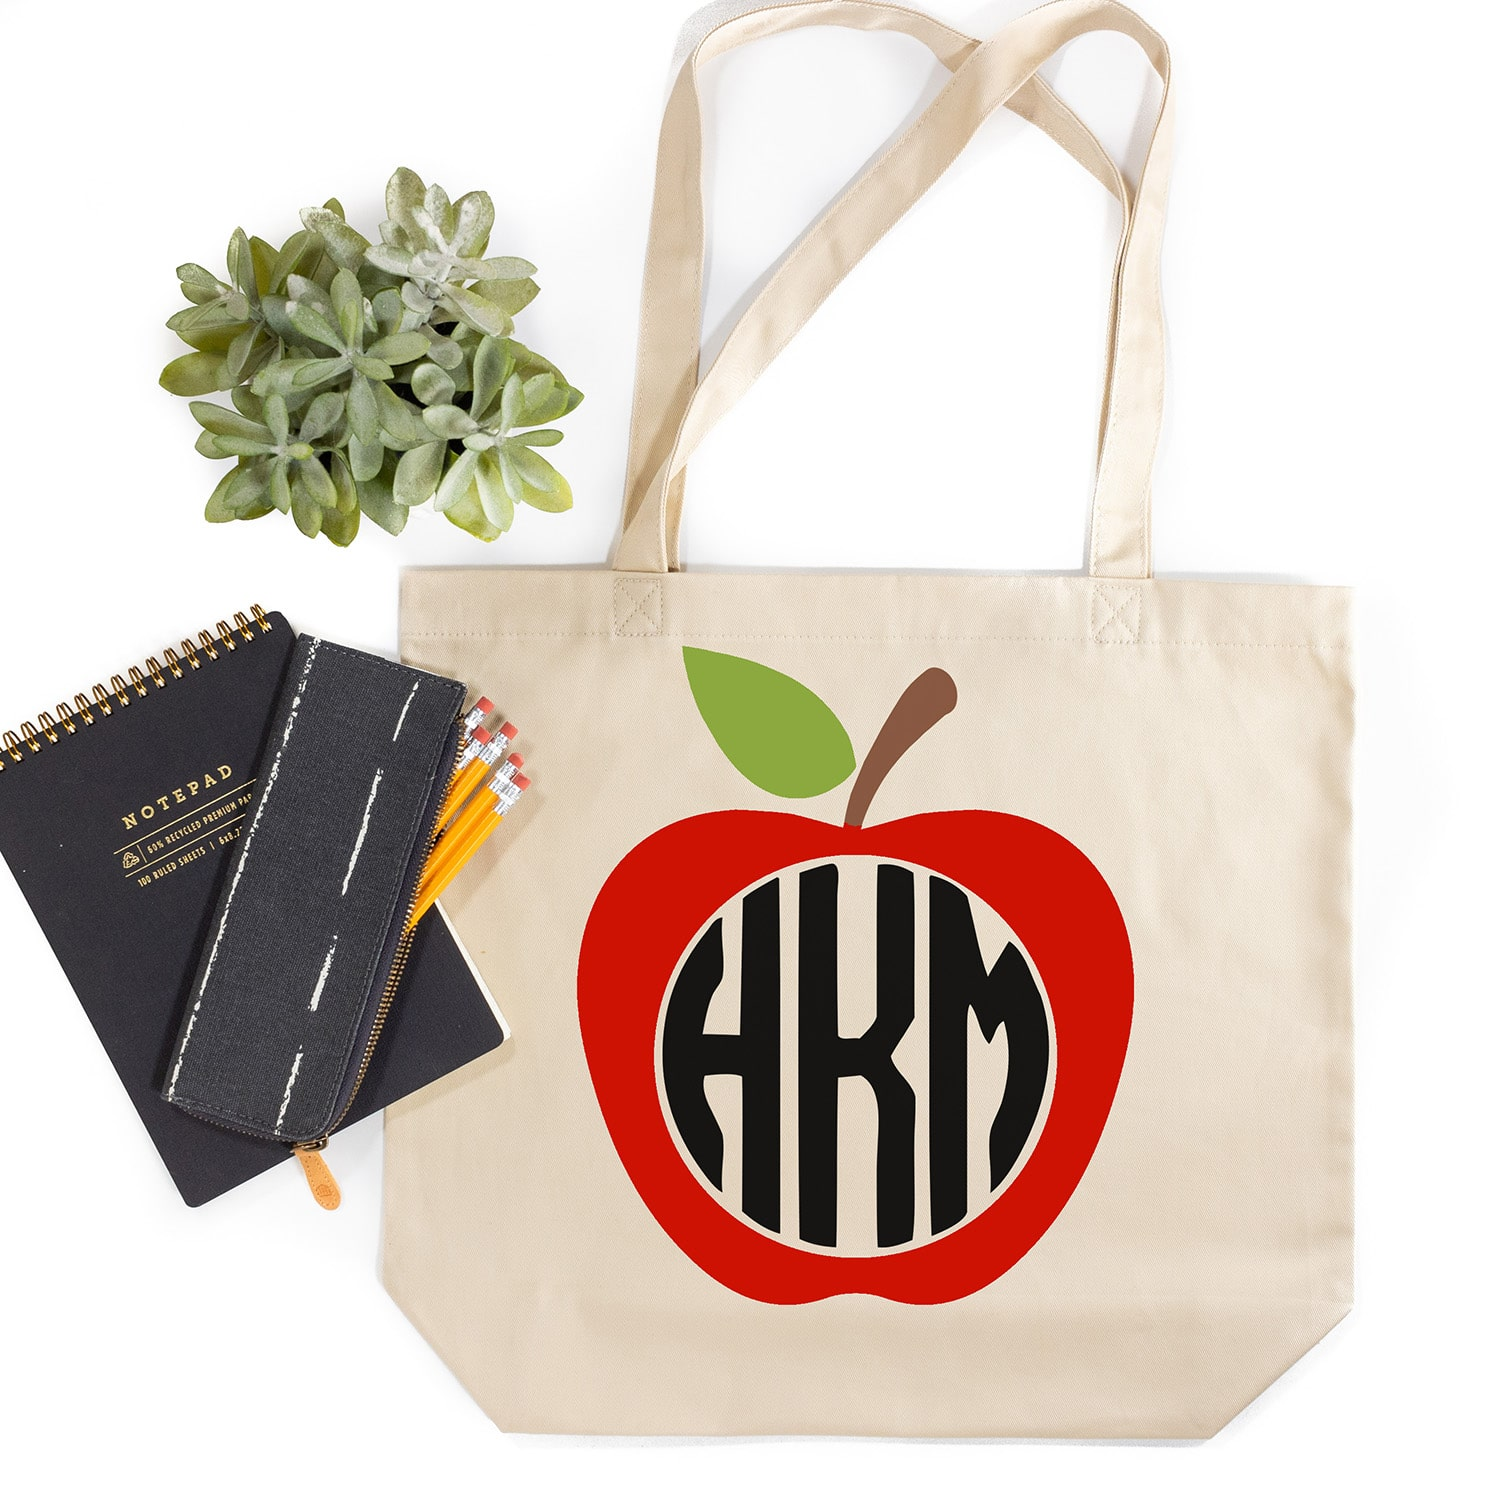 Tote bag with apple monogram design and notepad, pencils, and plant on white background